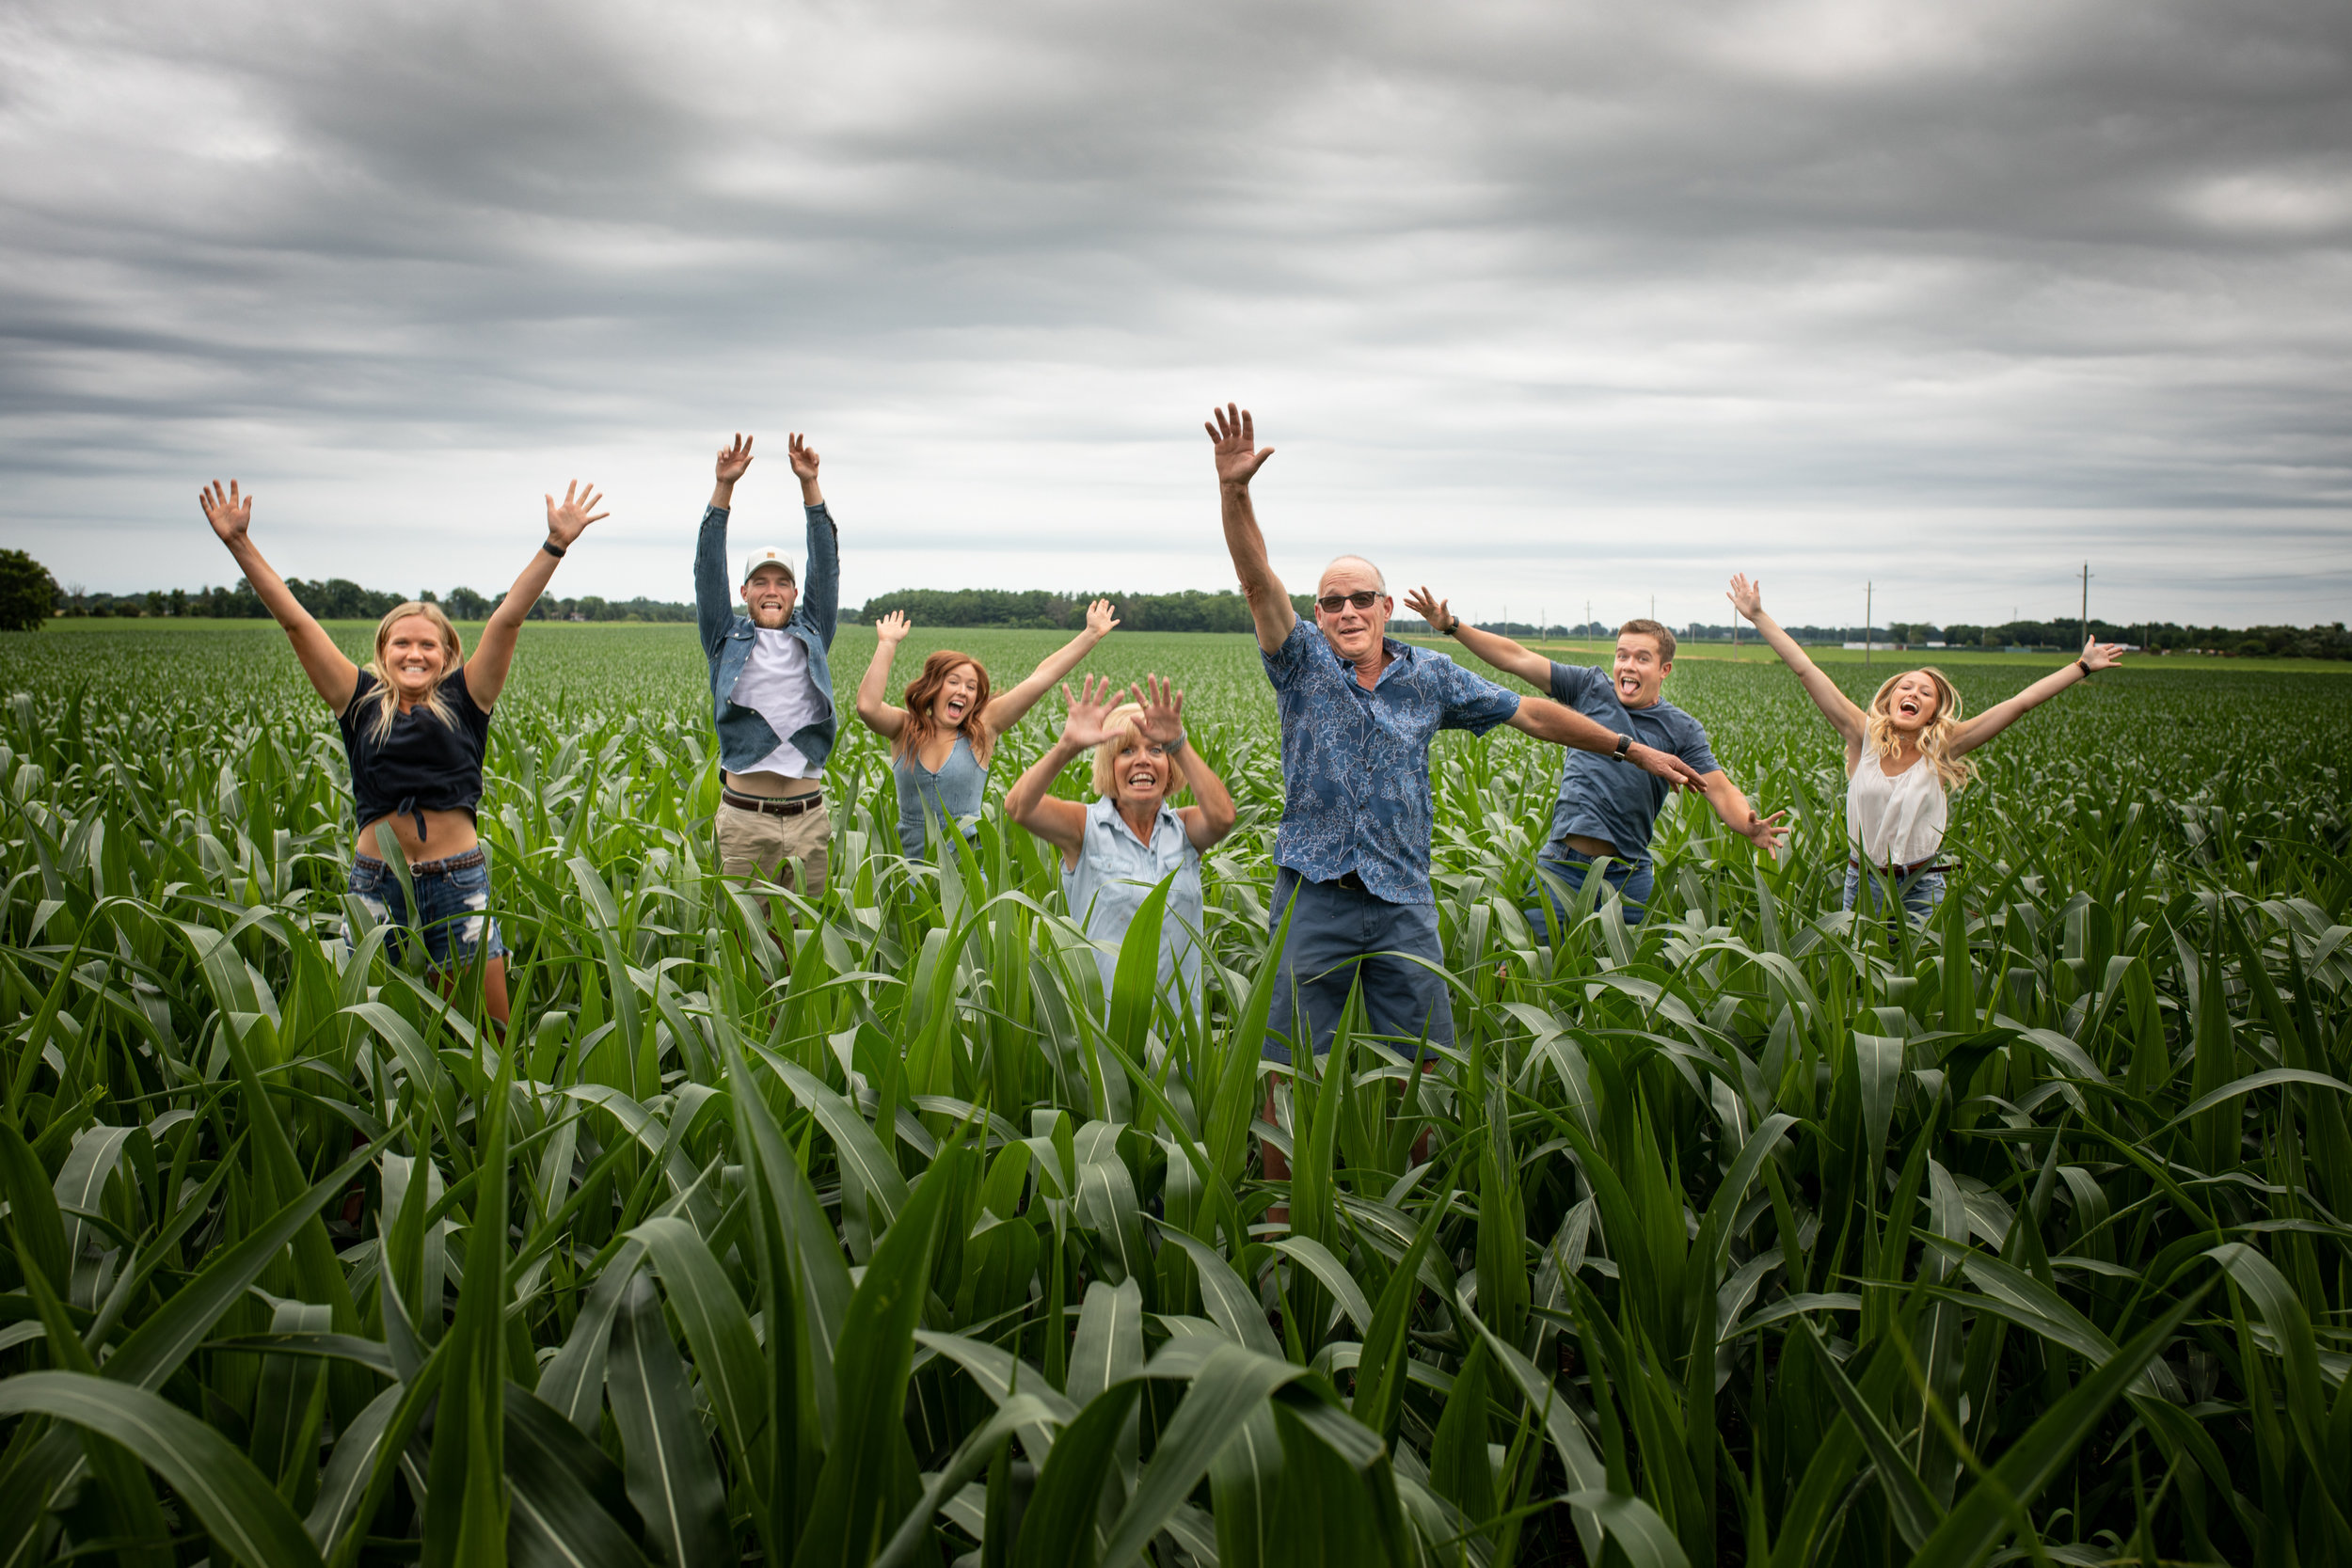 Family-agricultural-photographer-jodie-aldred-photography-rural-country-farm-farmers-ontario-london-huron-middlesex-elgin-chatham-elgin-rural-country-outdoors-corn.jpg